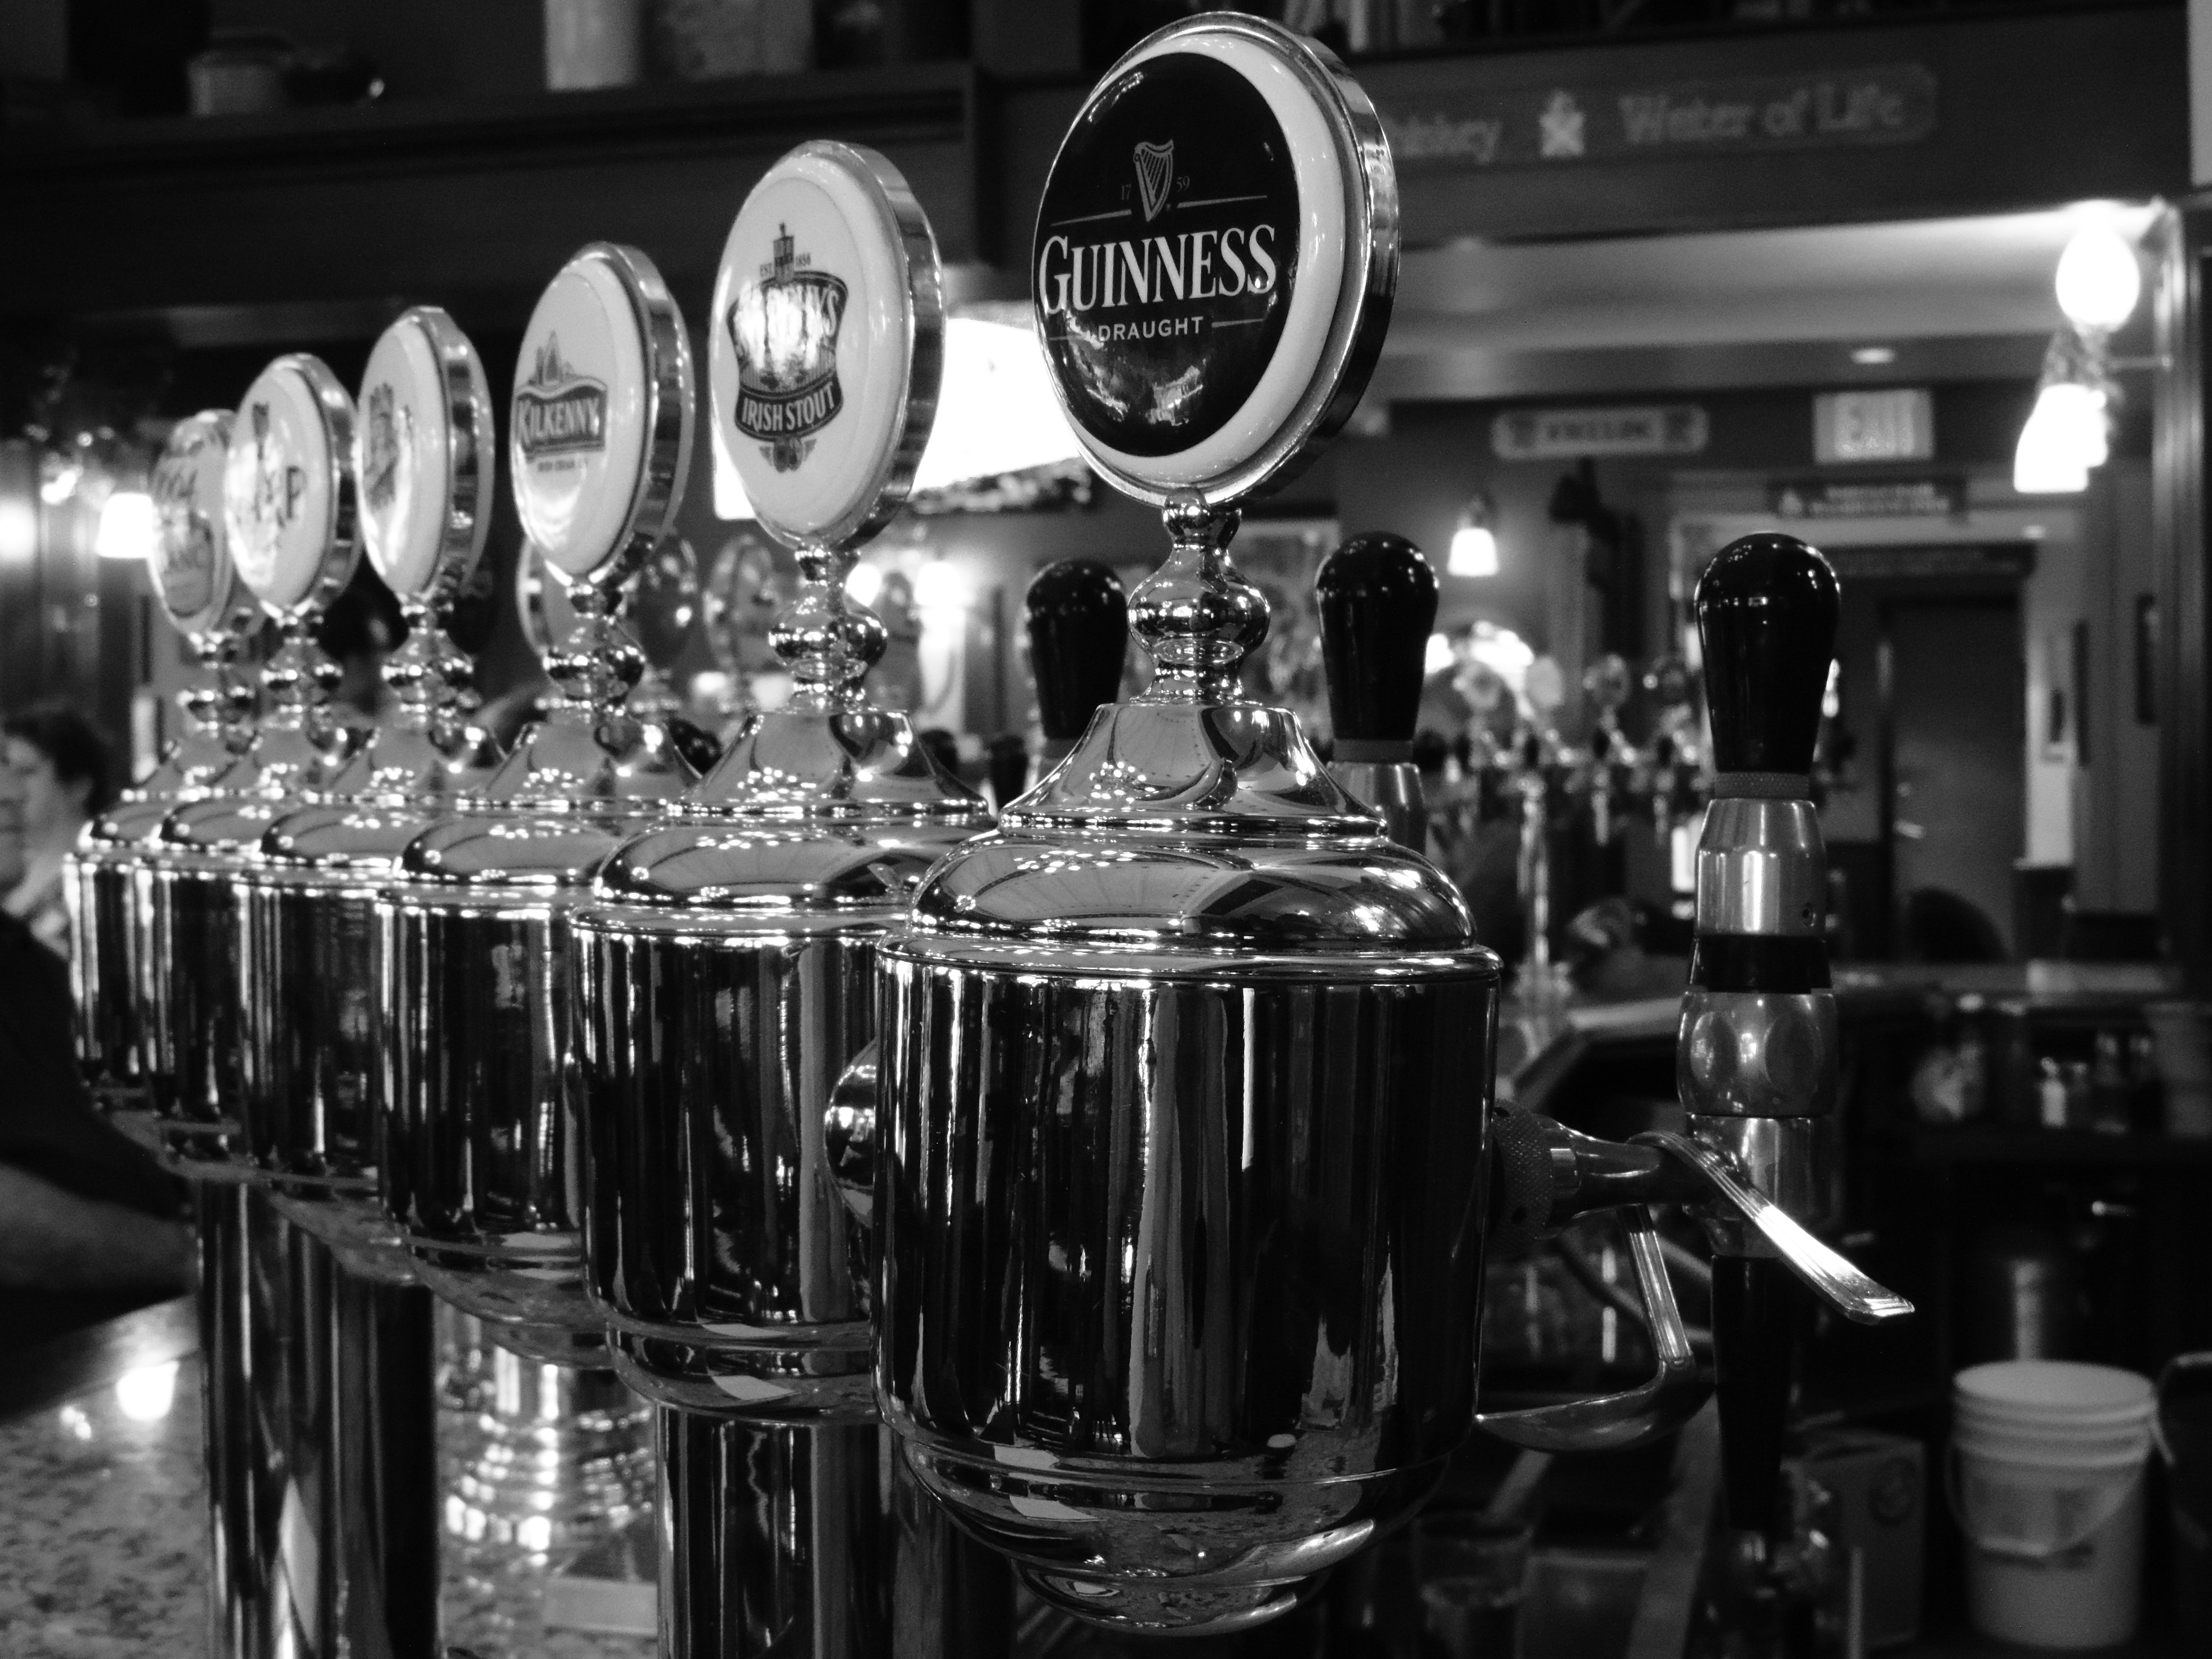 Grayscale Photography of Beer Dispenser